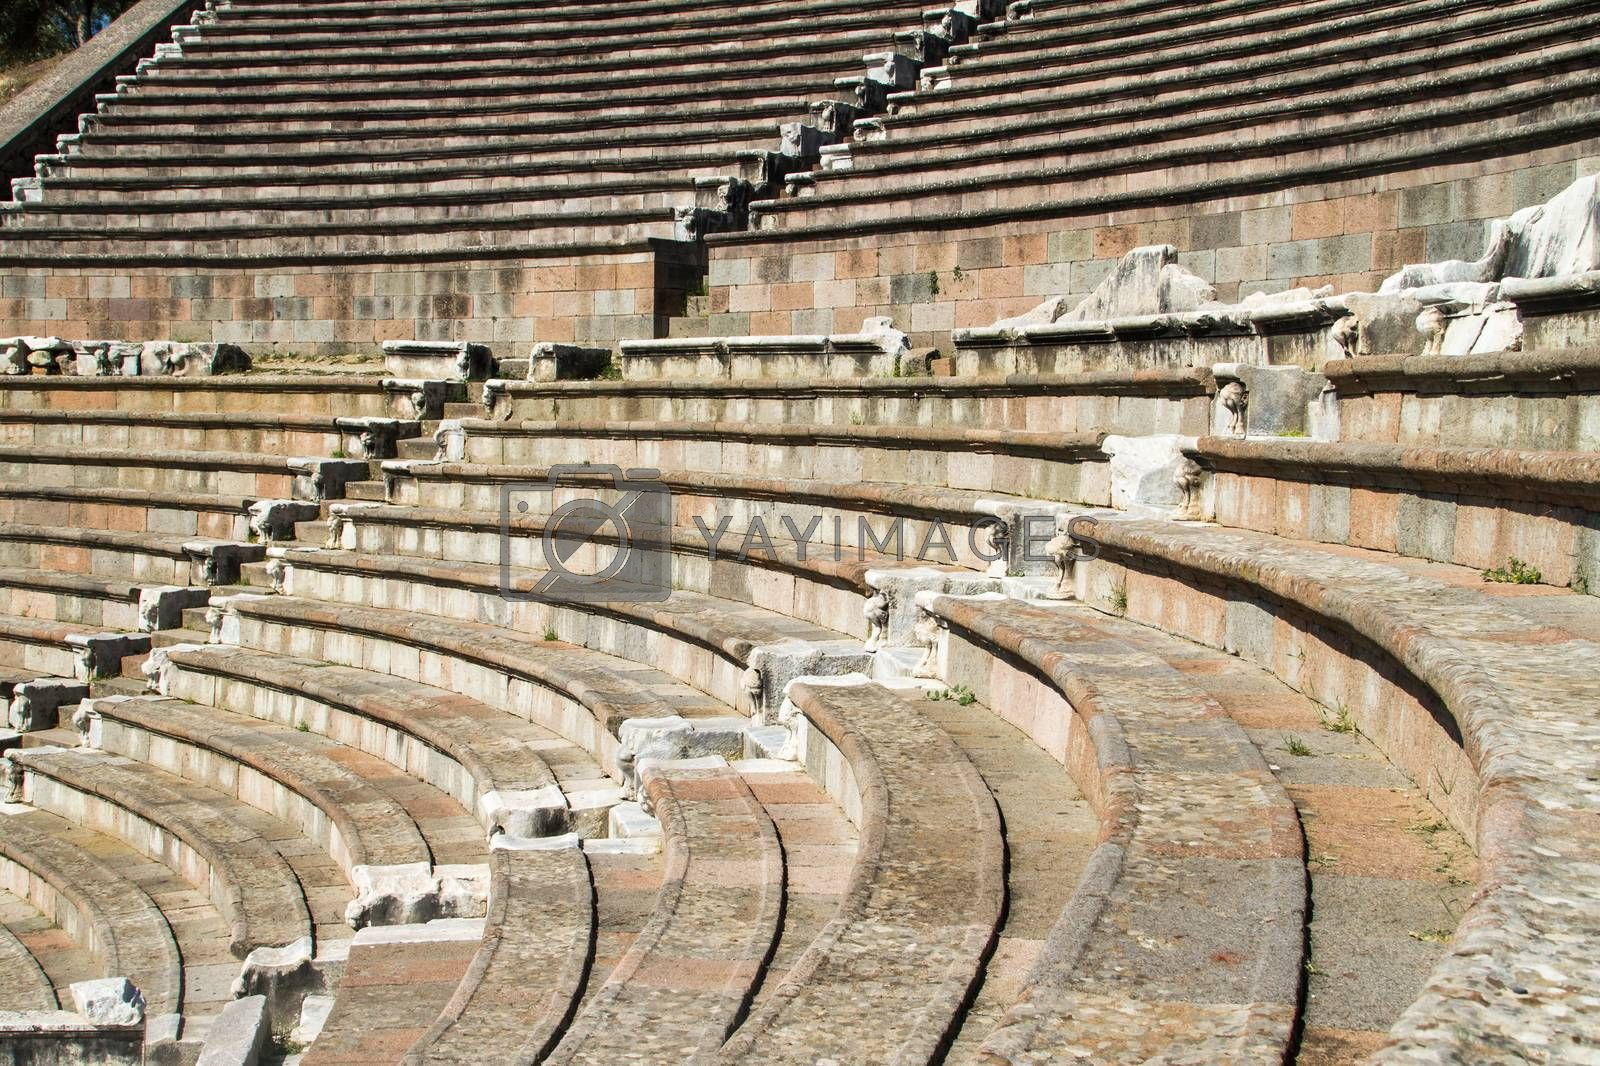 Royalty free image of Ruins of Asclepeion Theatre in Pergamon by niglaynike